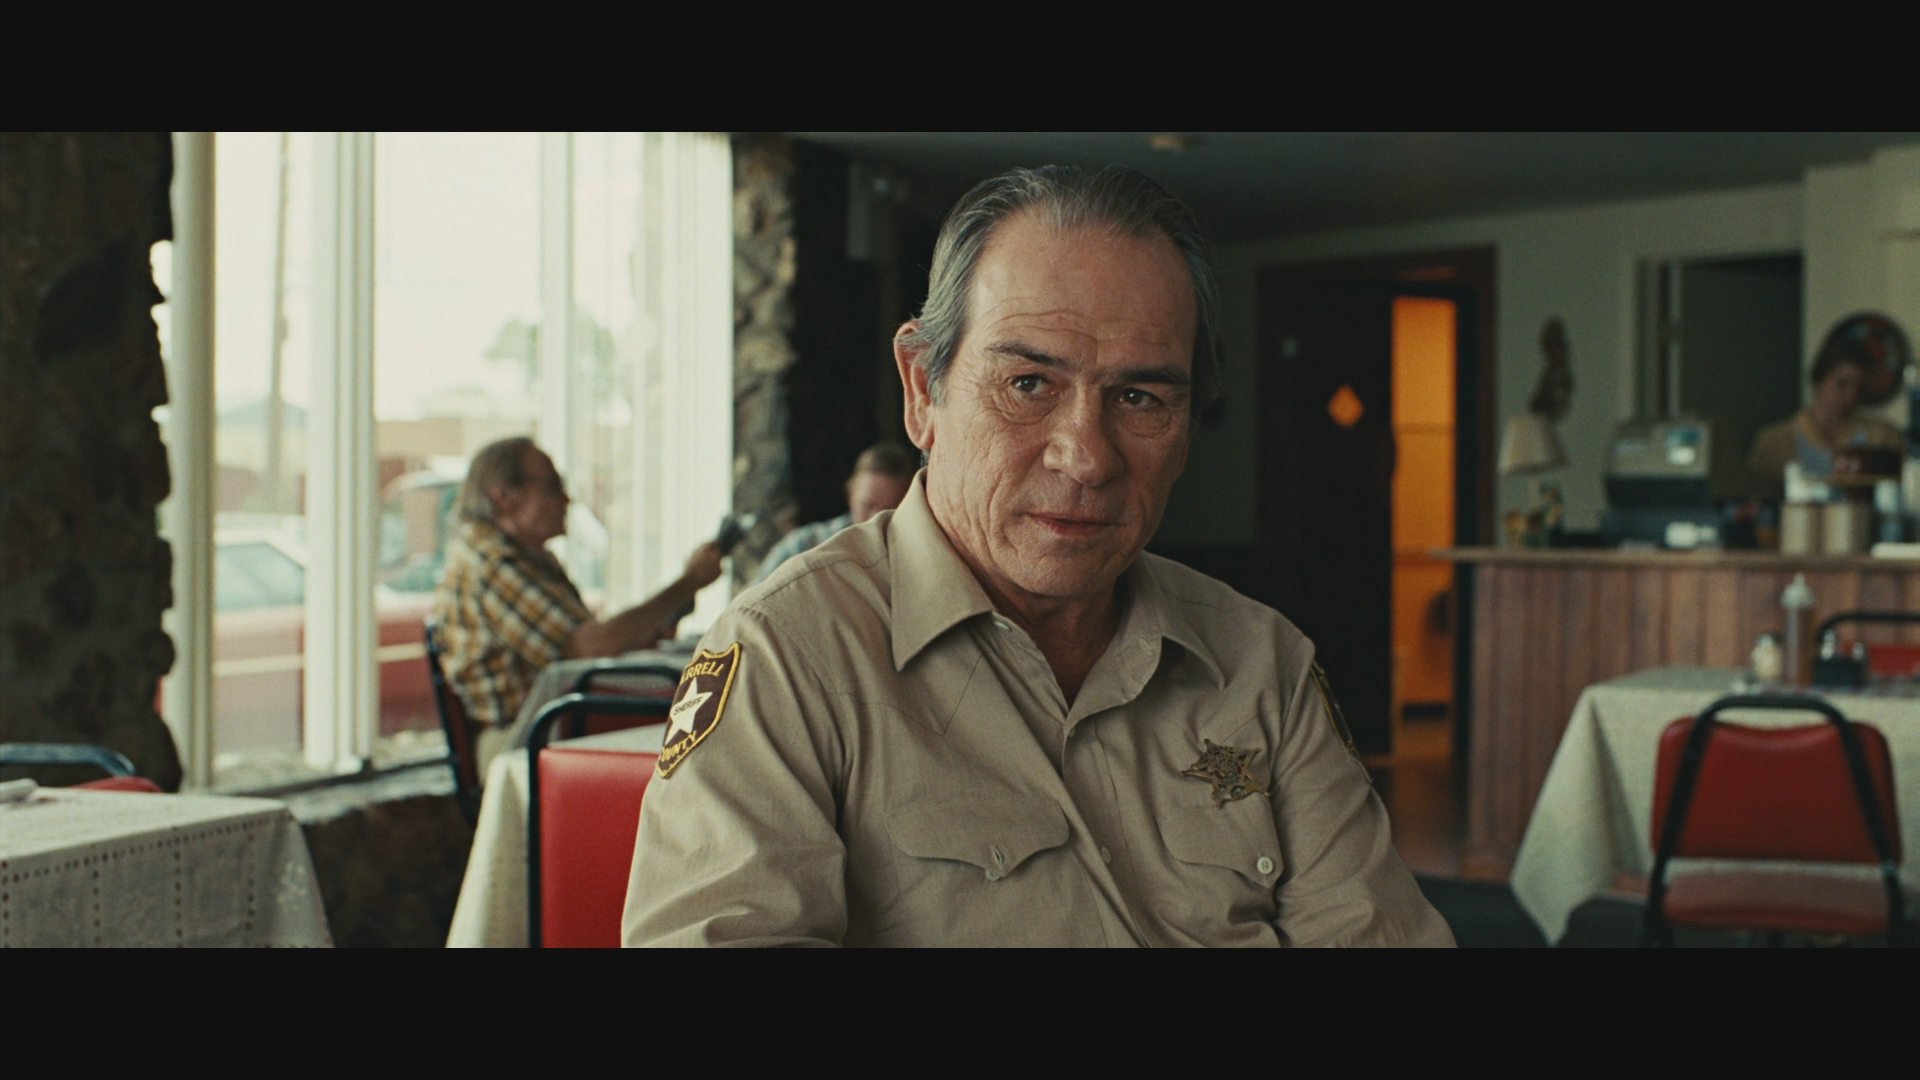 a movie analysis of no country for old men Best picture winner no country for old men is renowned for its straightforward story, eerie villain and abrupt editing one scene that best captures the essence of the movie is the ending this scene encompasses the whole movie.